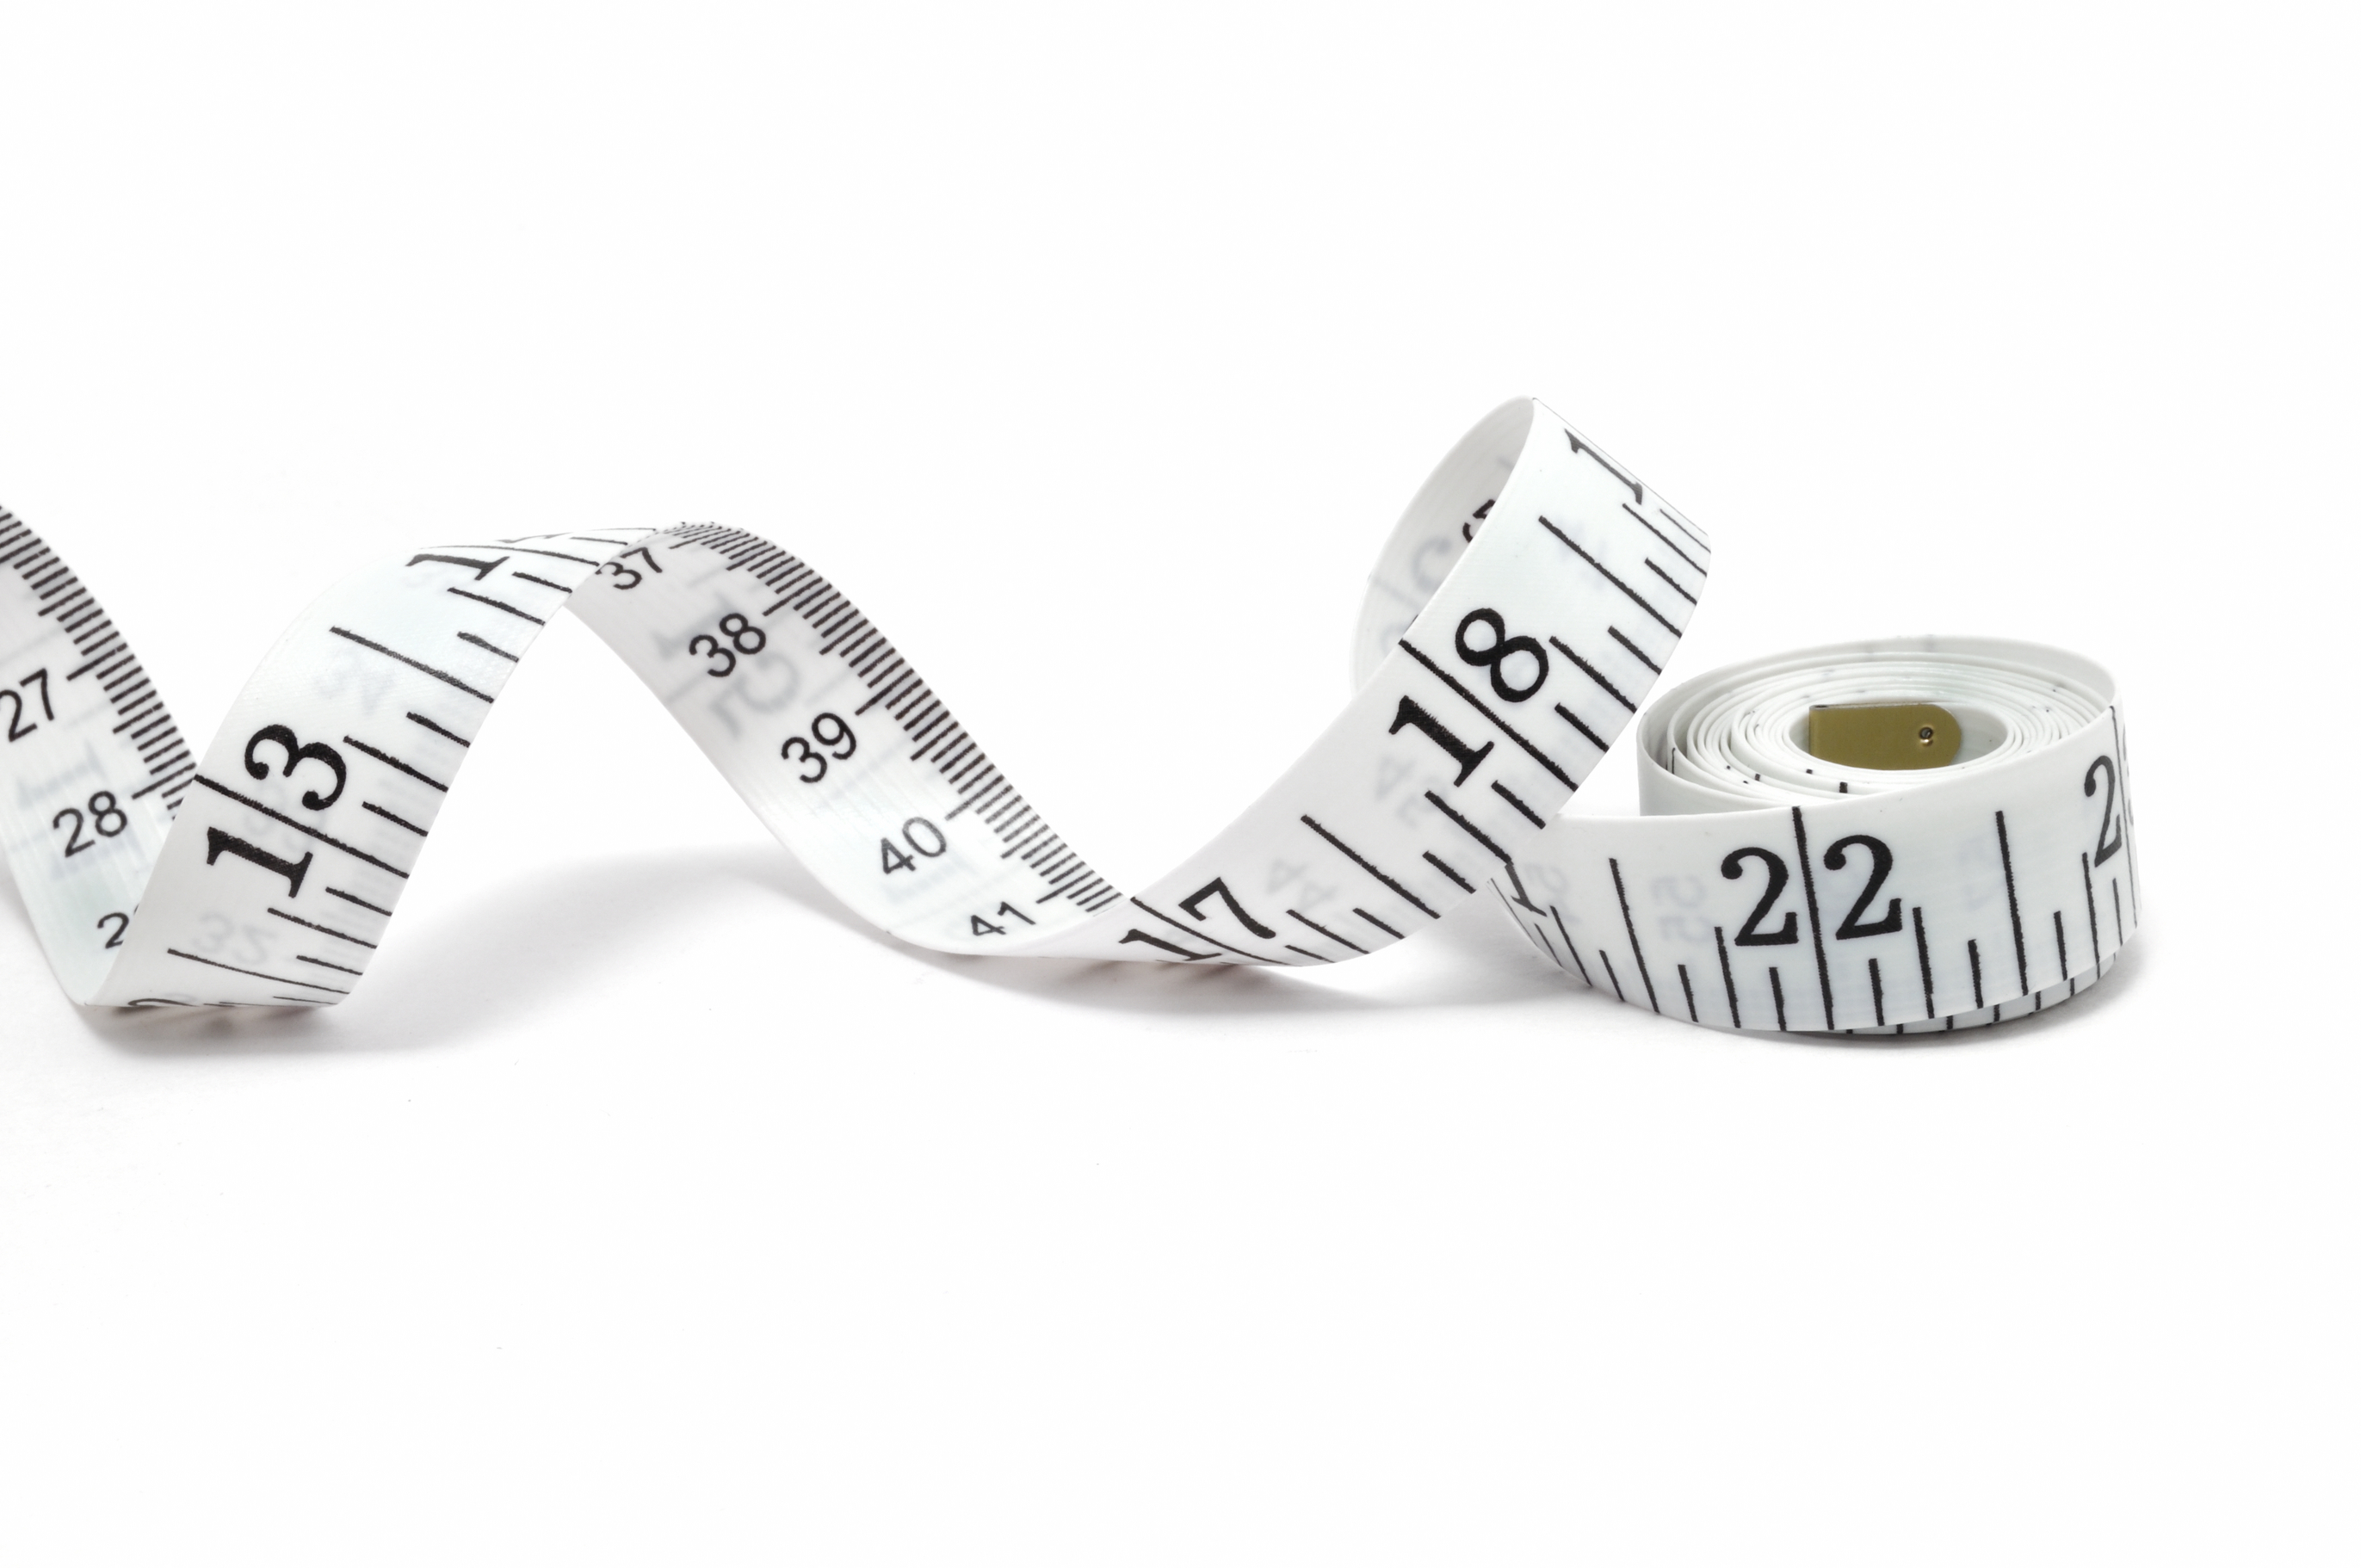 Free Cloth Tape Measure From Ephapparel By Mail - Body Tape Measure, Transparent background PNG HD thumbnail